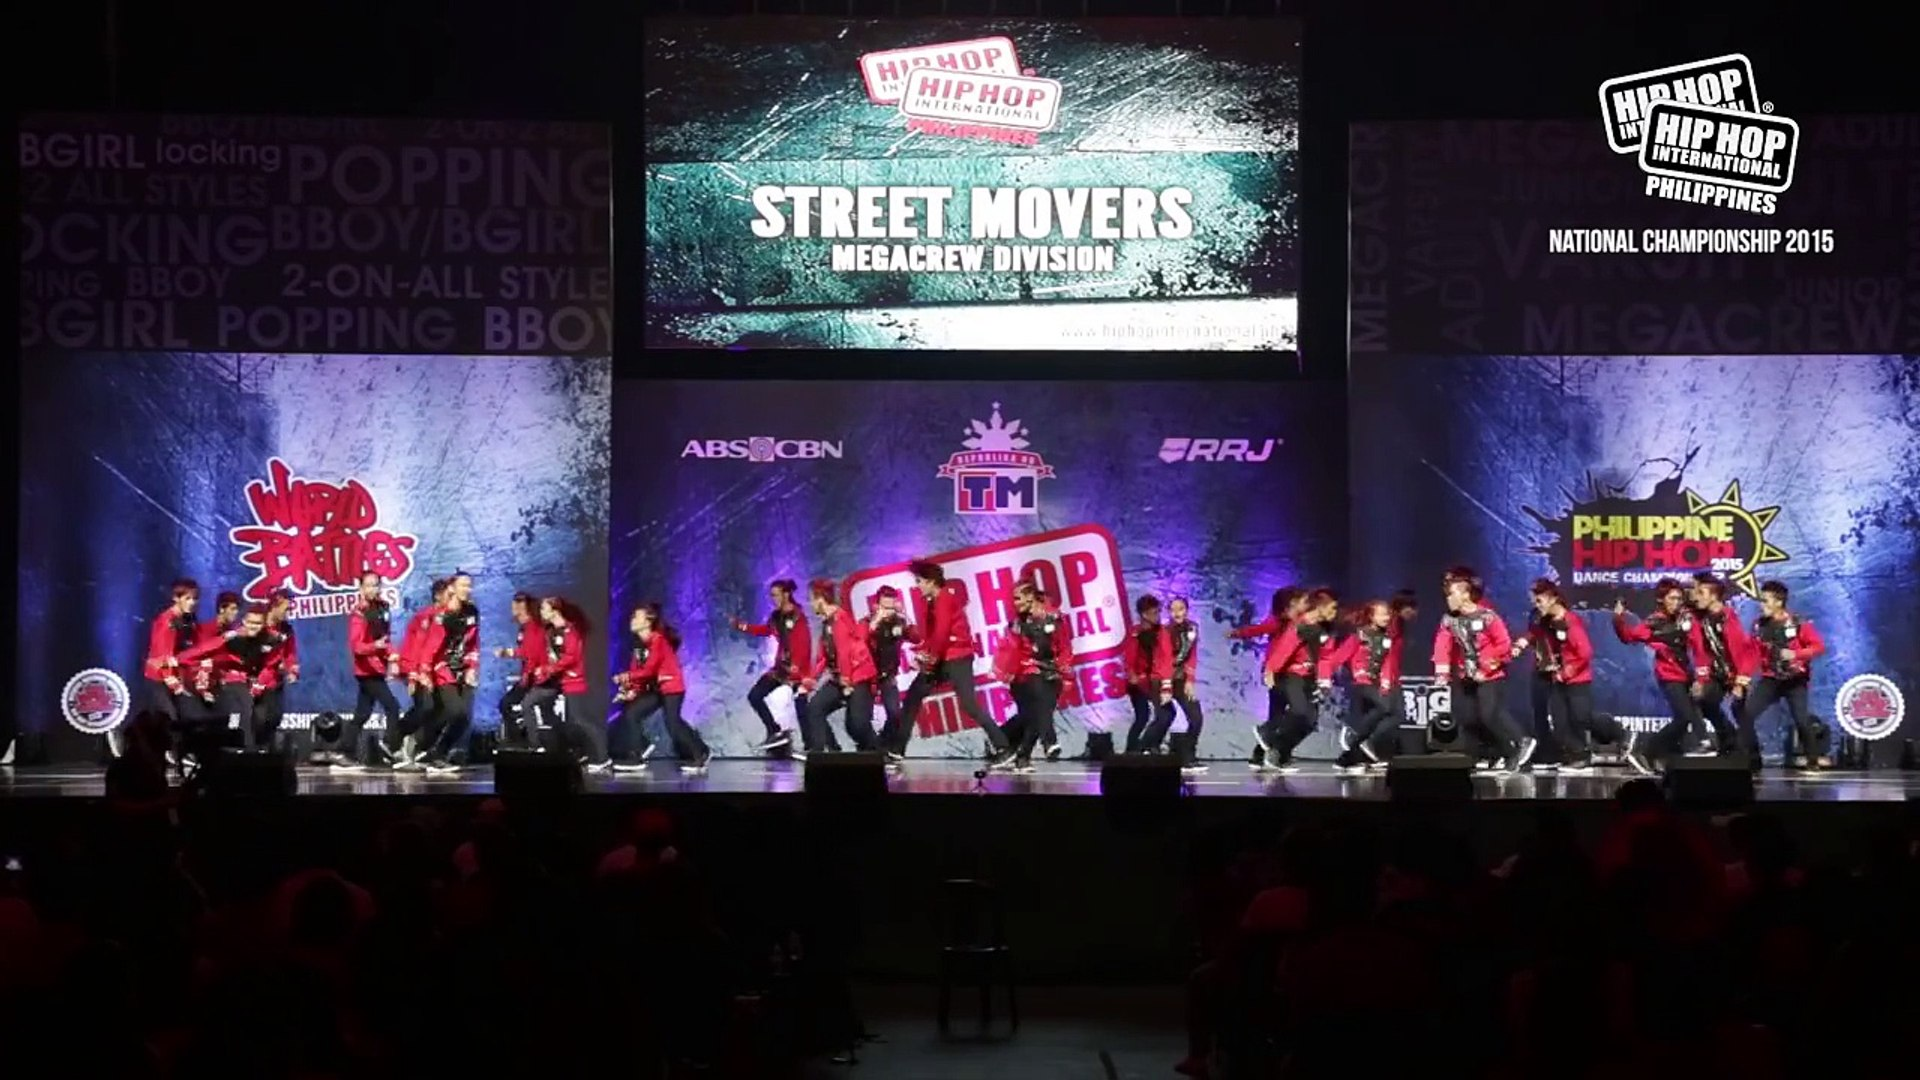 STREET MOVERS - MegaCrew Division | 2015 Philippine Hip Hop Dance  Championship